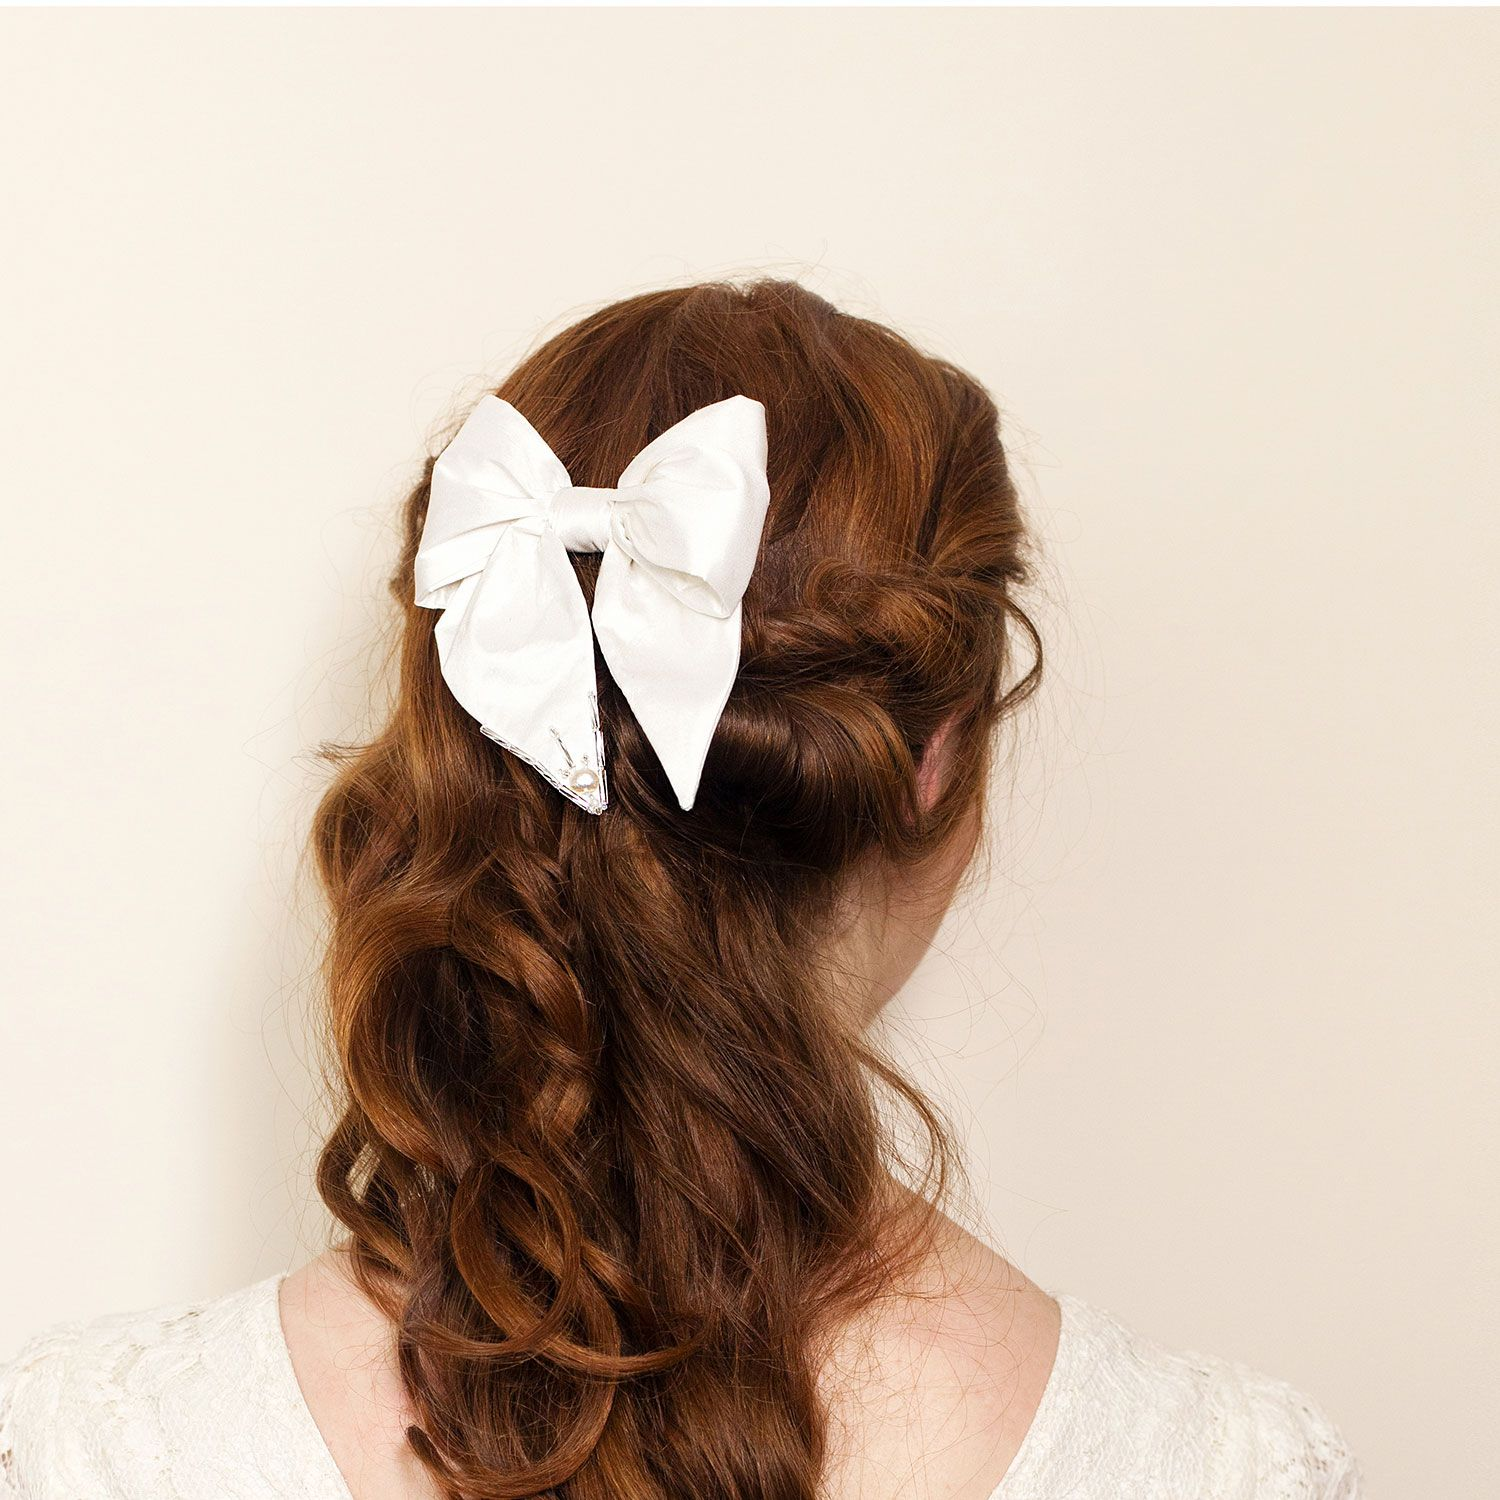 Simple cute bridal hair bow clip with sparkle detail by